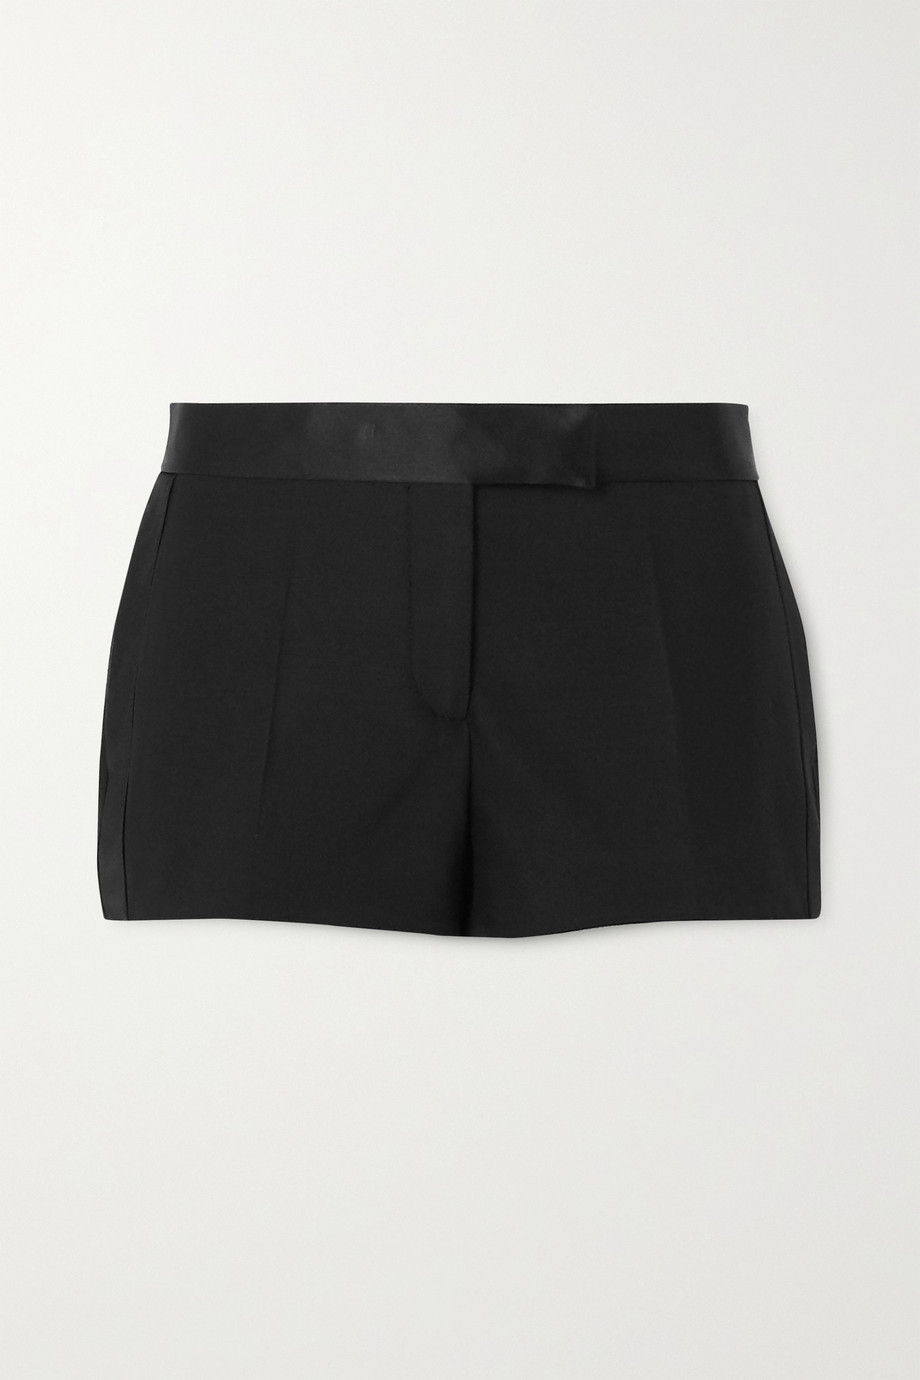 TOM FORD Silk satin-trimmed wool-blend shorts